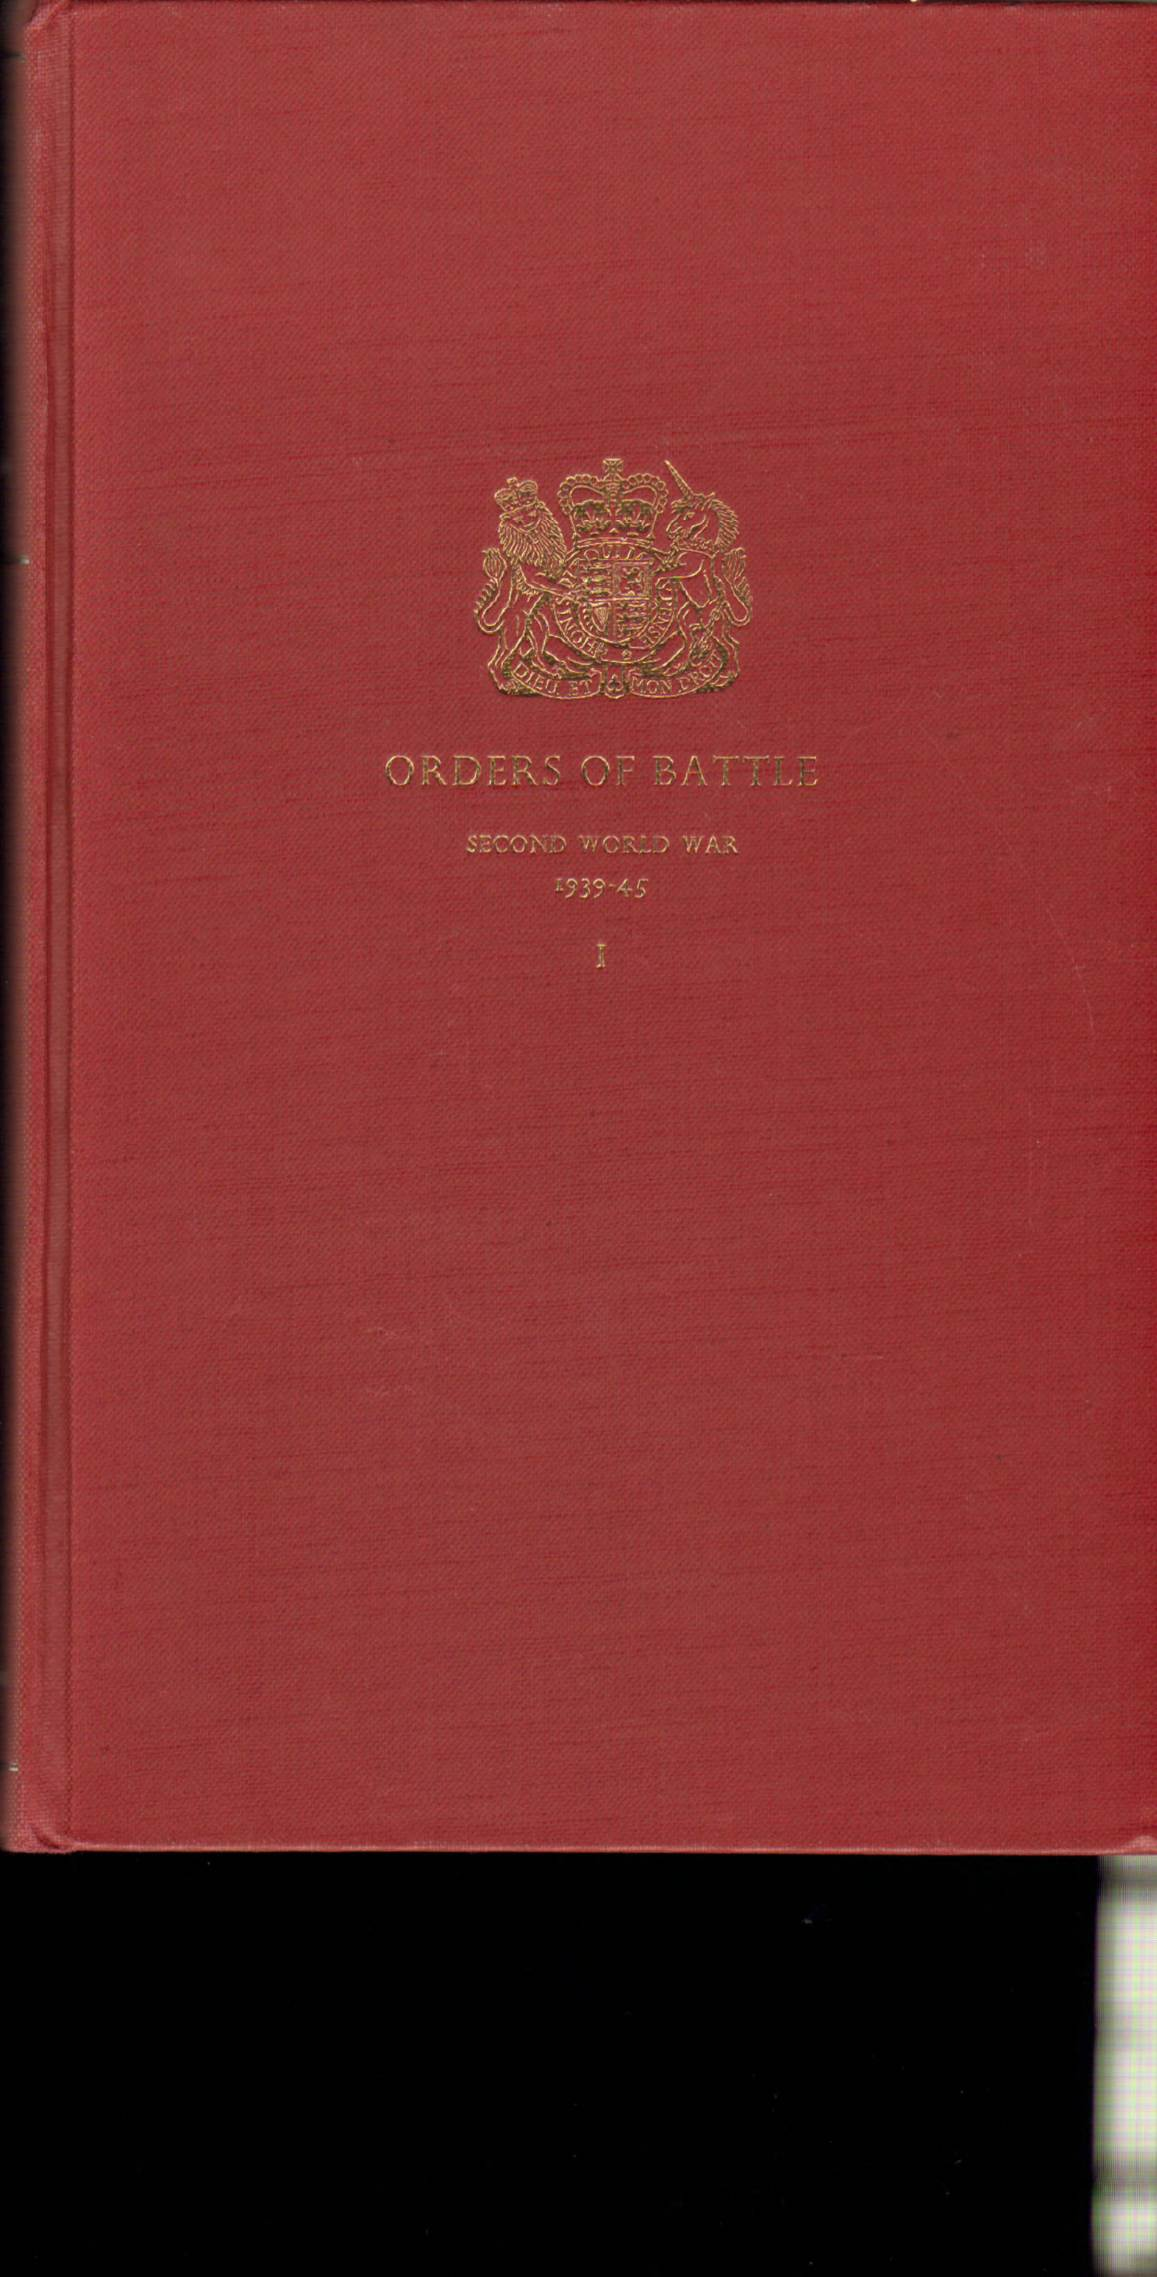 View individual pages of 'Orders of Battle, Second World War, 1939-45, Vol. I'